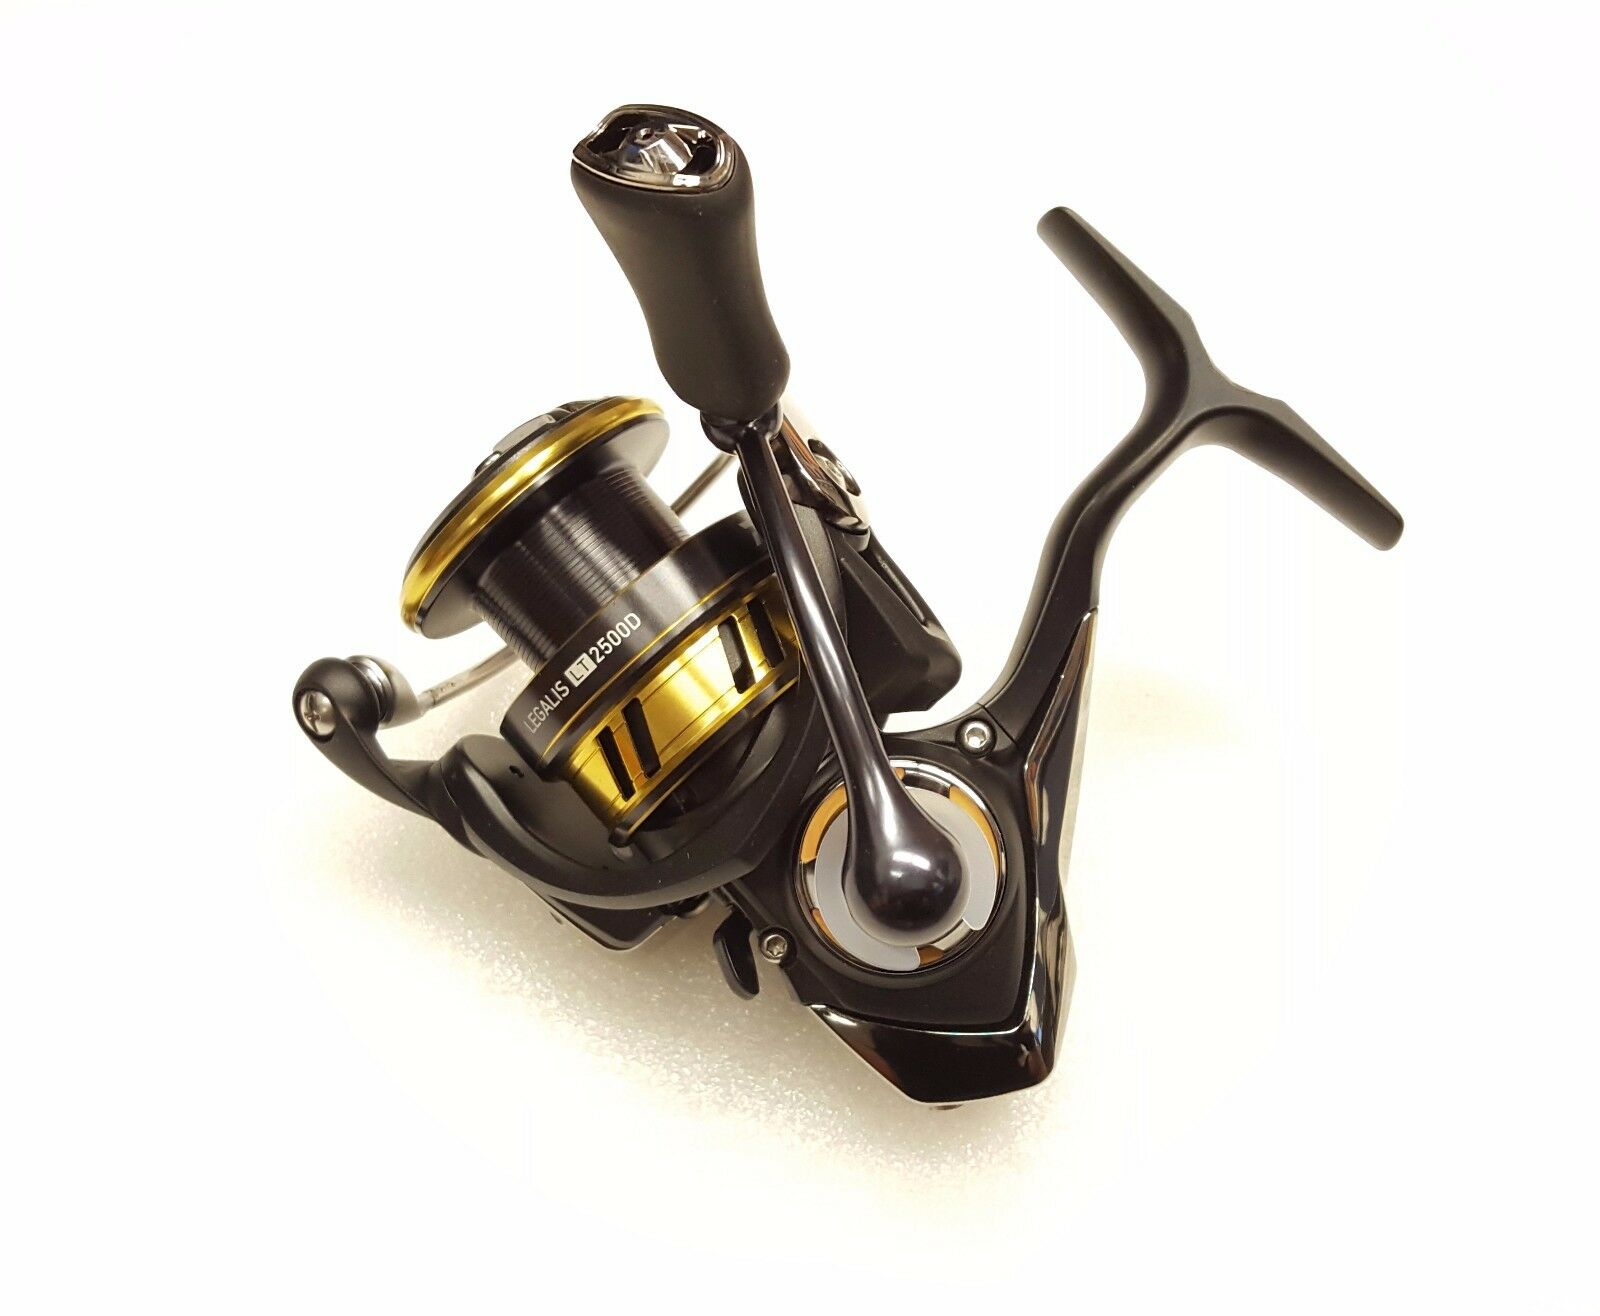 Daiwa Legalis LT 5.3 1 Left Right Hand Spinning Fishing Reel - LGLT2500D